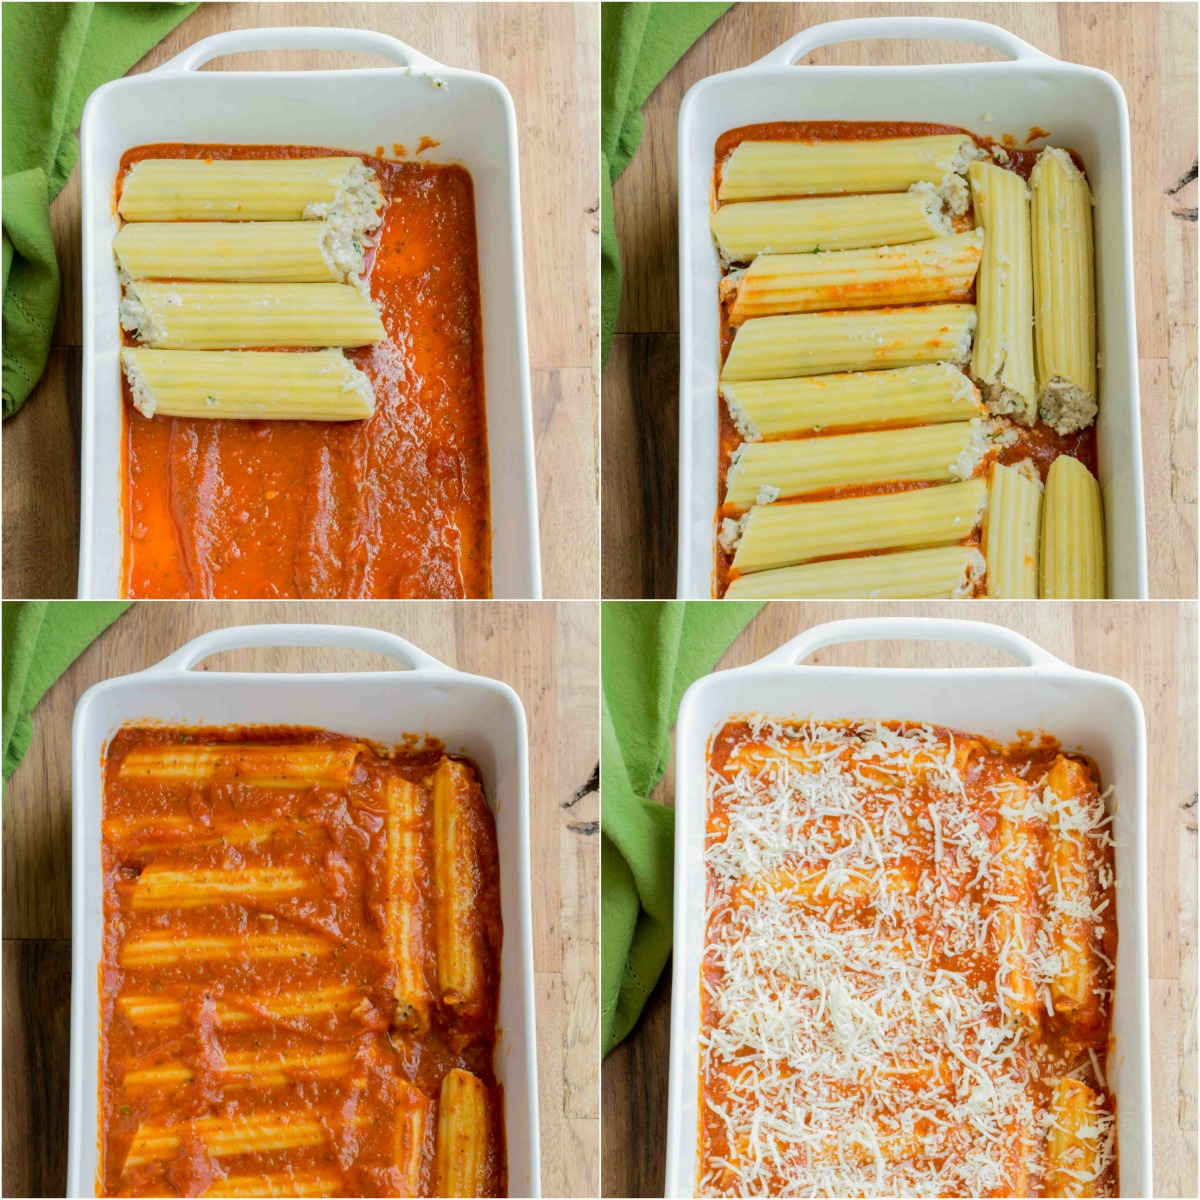 Come see how to make homemade manicotti step by step!